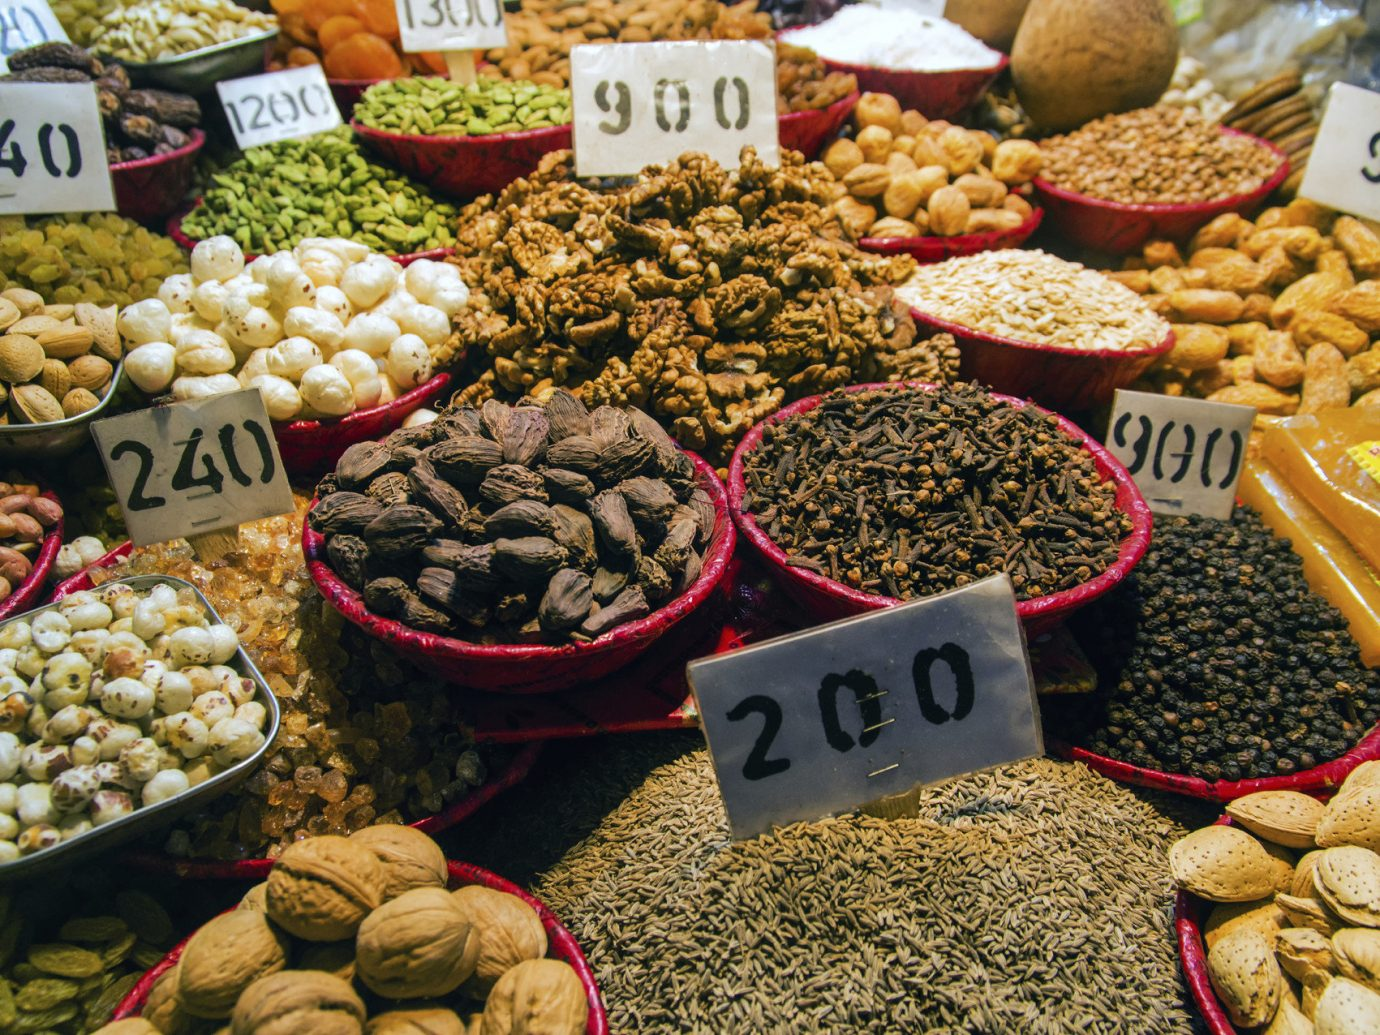 Travel Tips food market City marketplace public space human settlement plant fruit different bazaar produce dried fruit flower flavor items various variety assorted assortment several fresh arranged vegetable